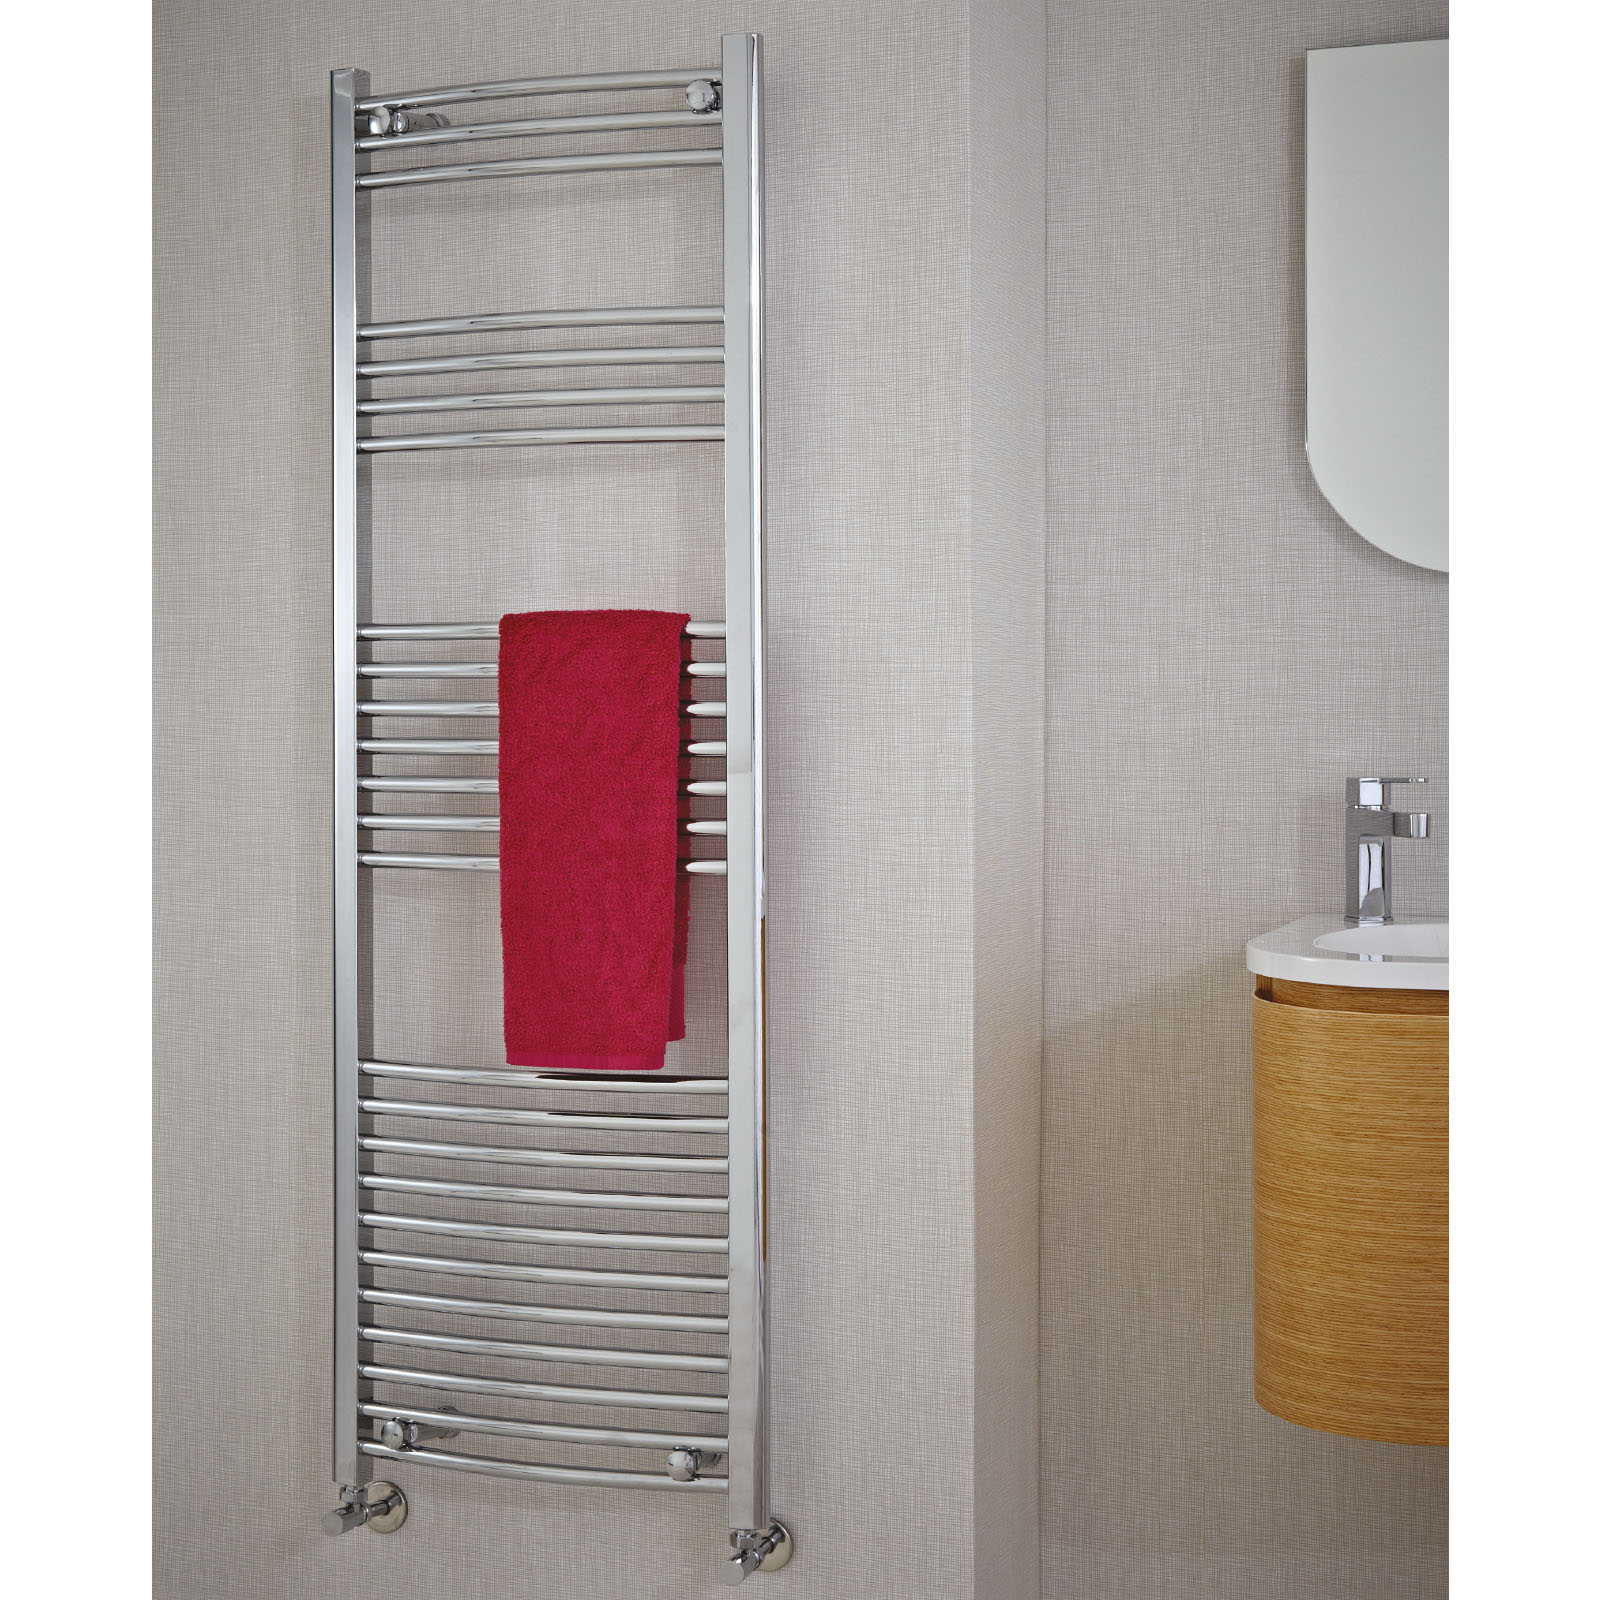 Fullsize Of Electric Towel Warmer